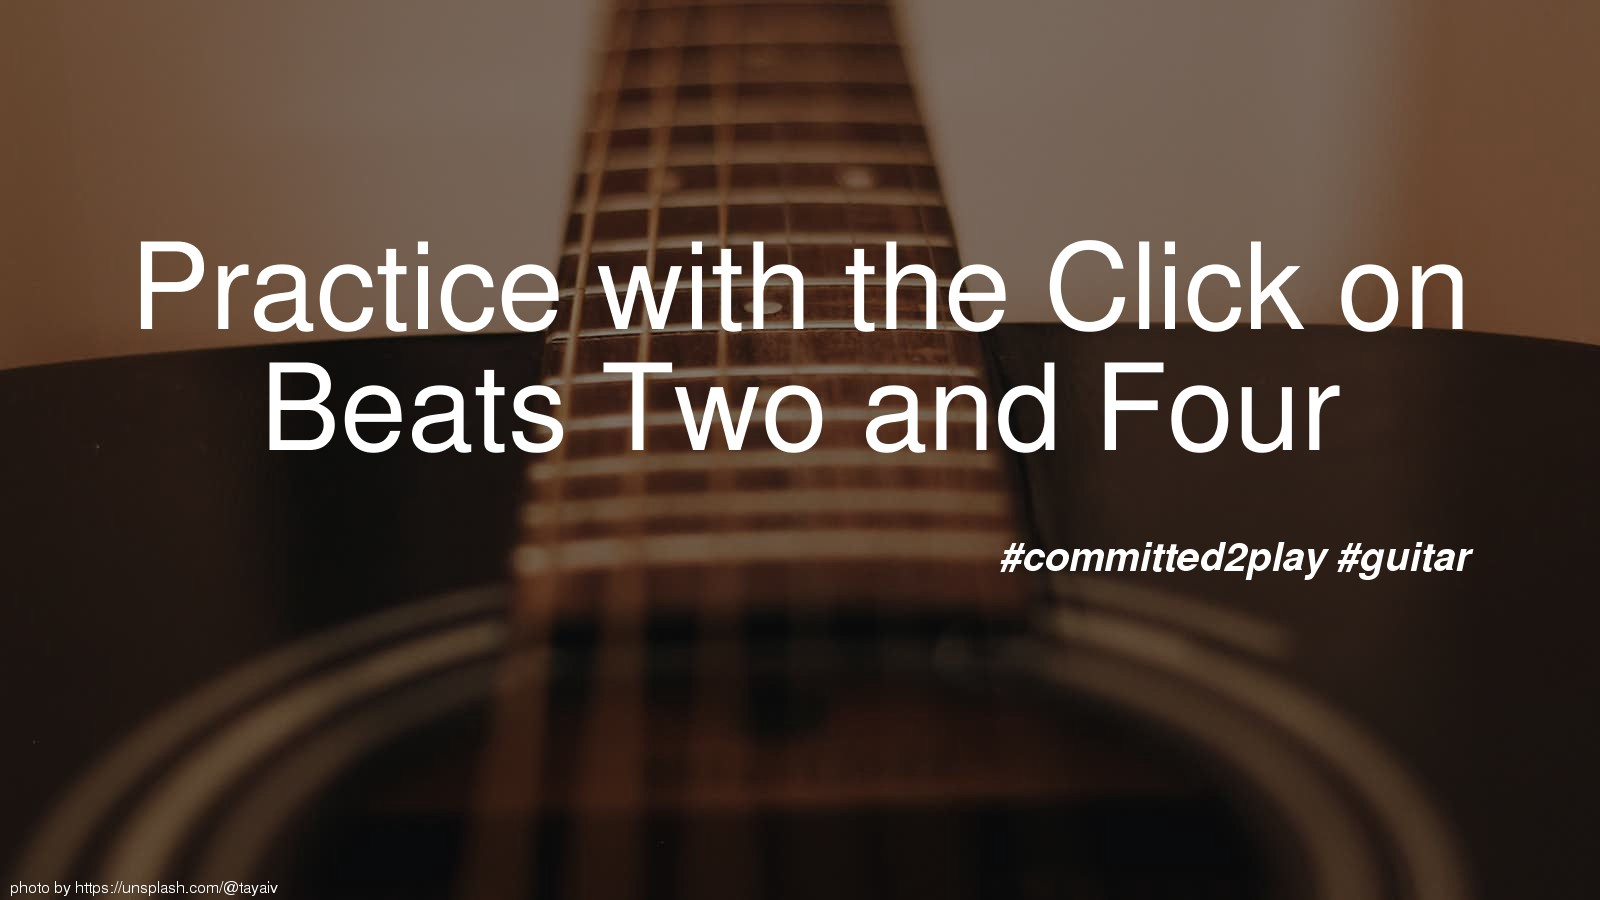 Practice with the Click on Beats Two and Four